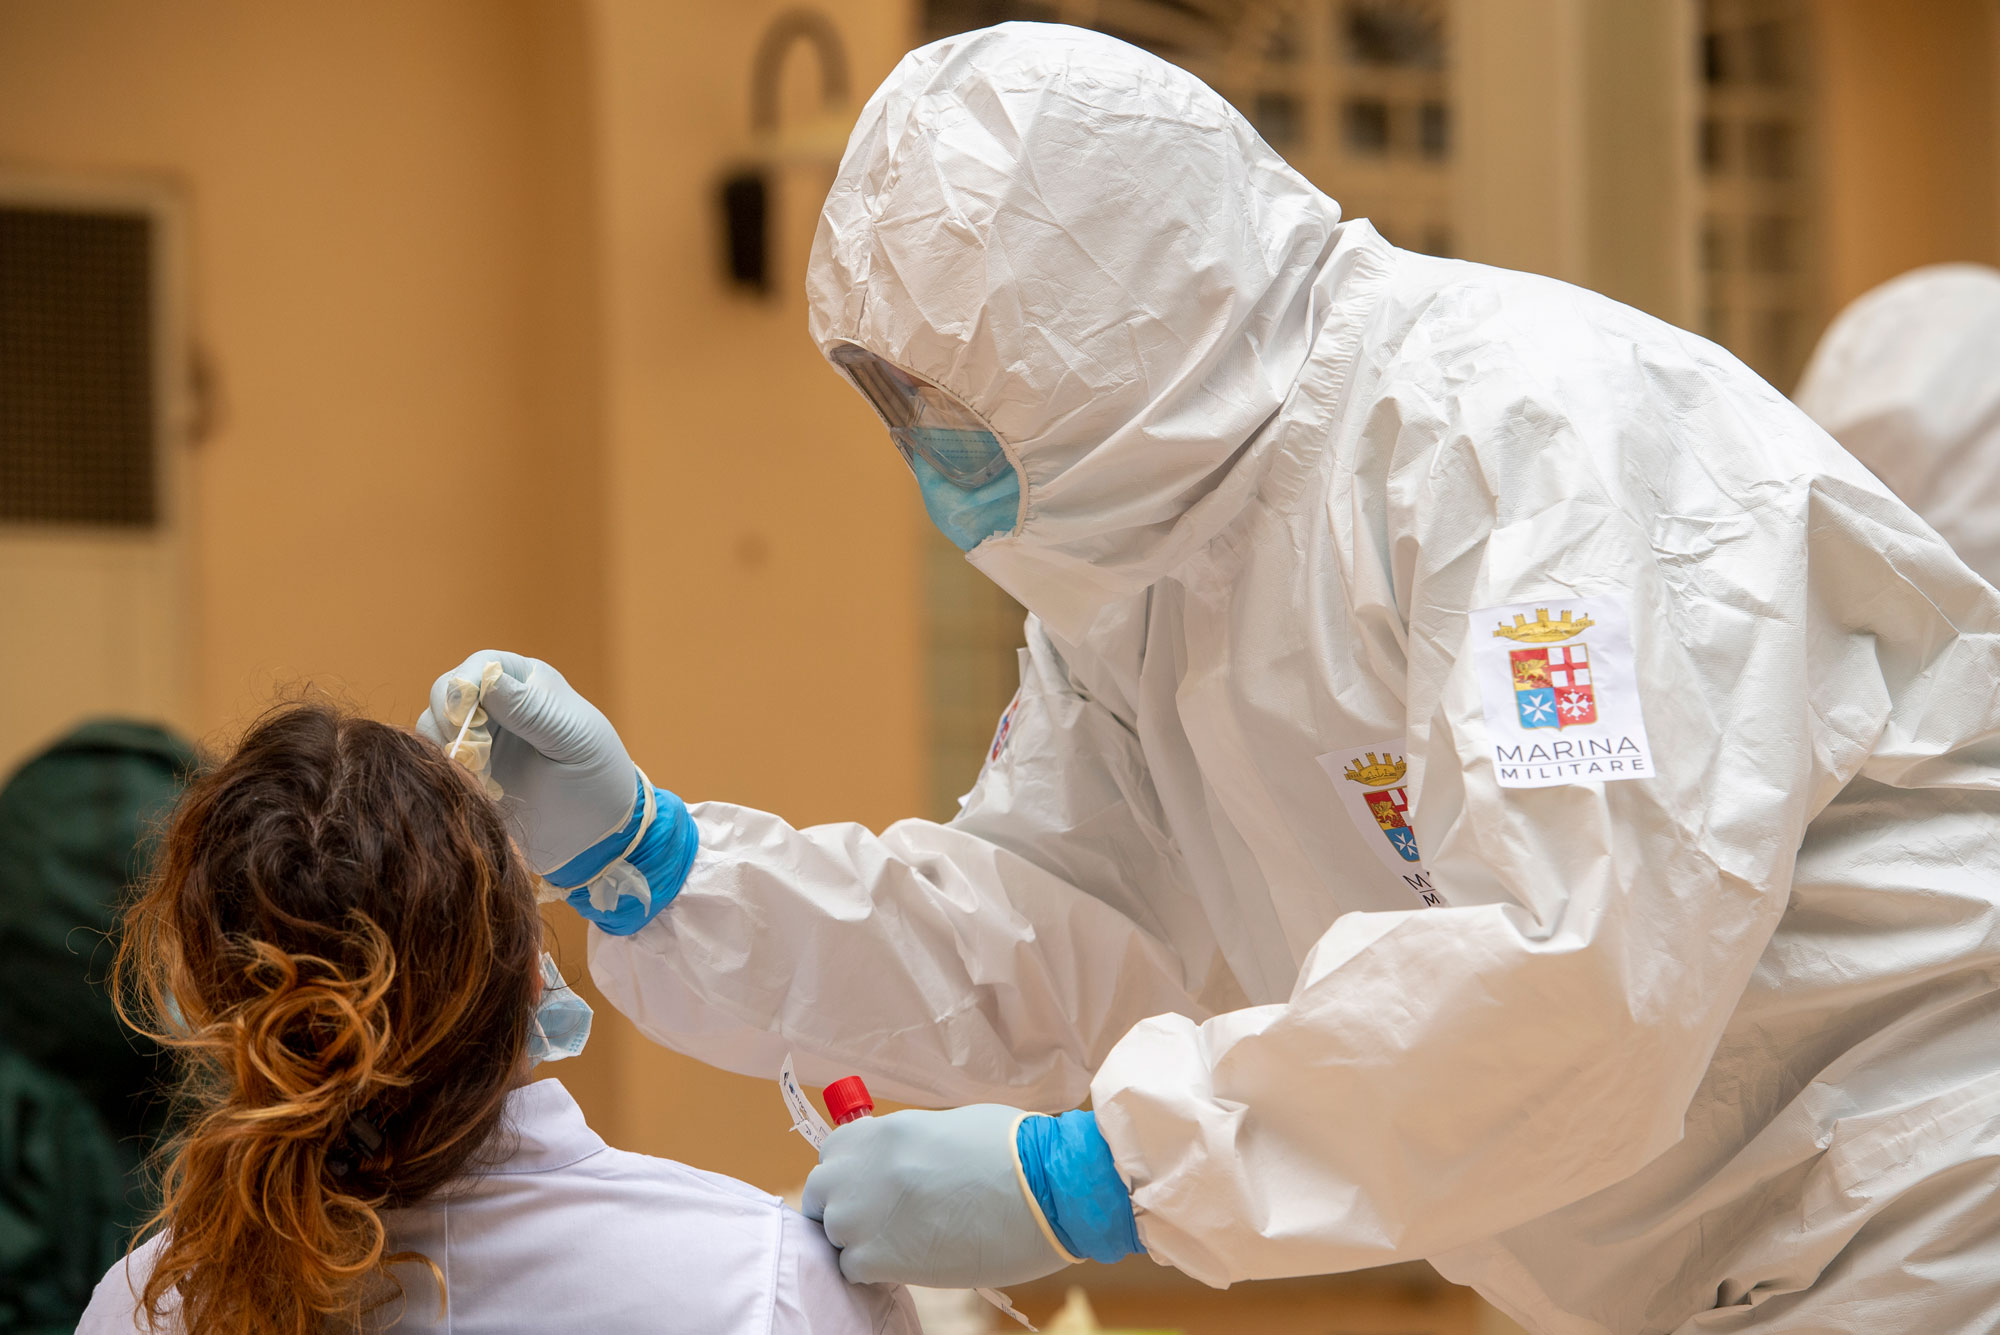 An Italian Navy doctor administers a Covid-19 test inside a health facility on May 21 in Tempio Pausania, Italy.